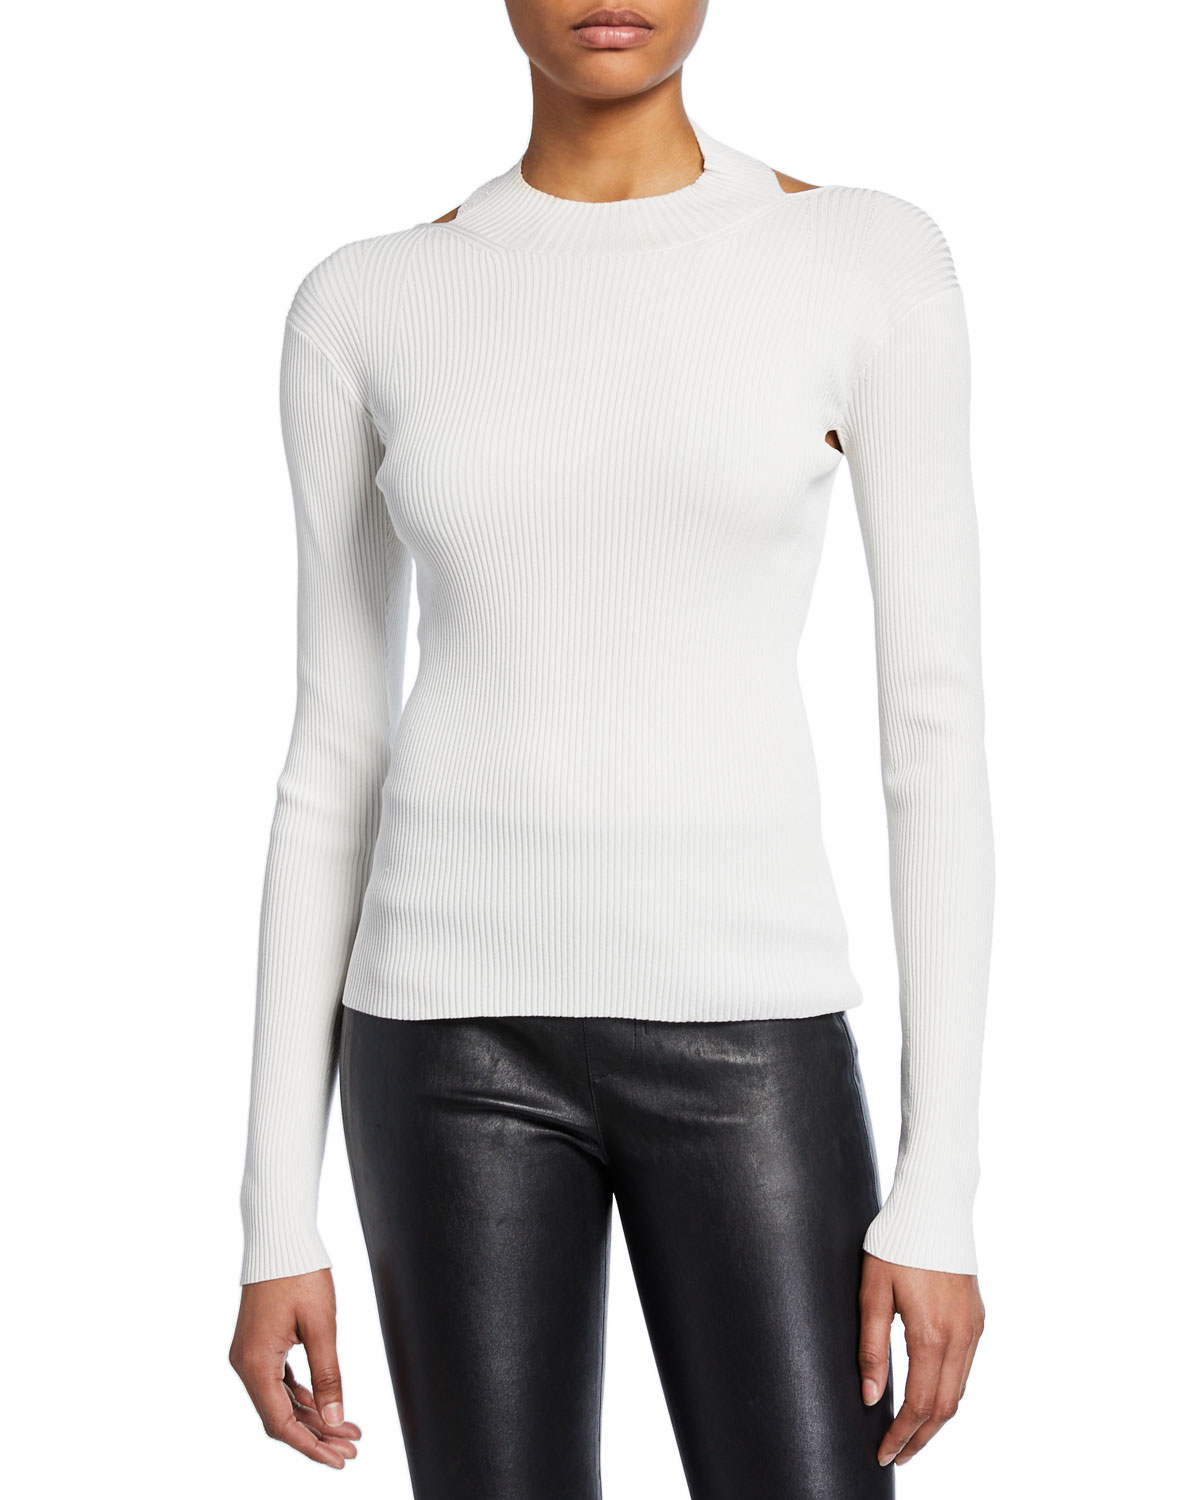 Helmut Lang Tops OPEN-BACK LONG-SLEEVE RIB TOP